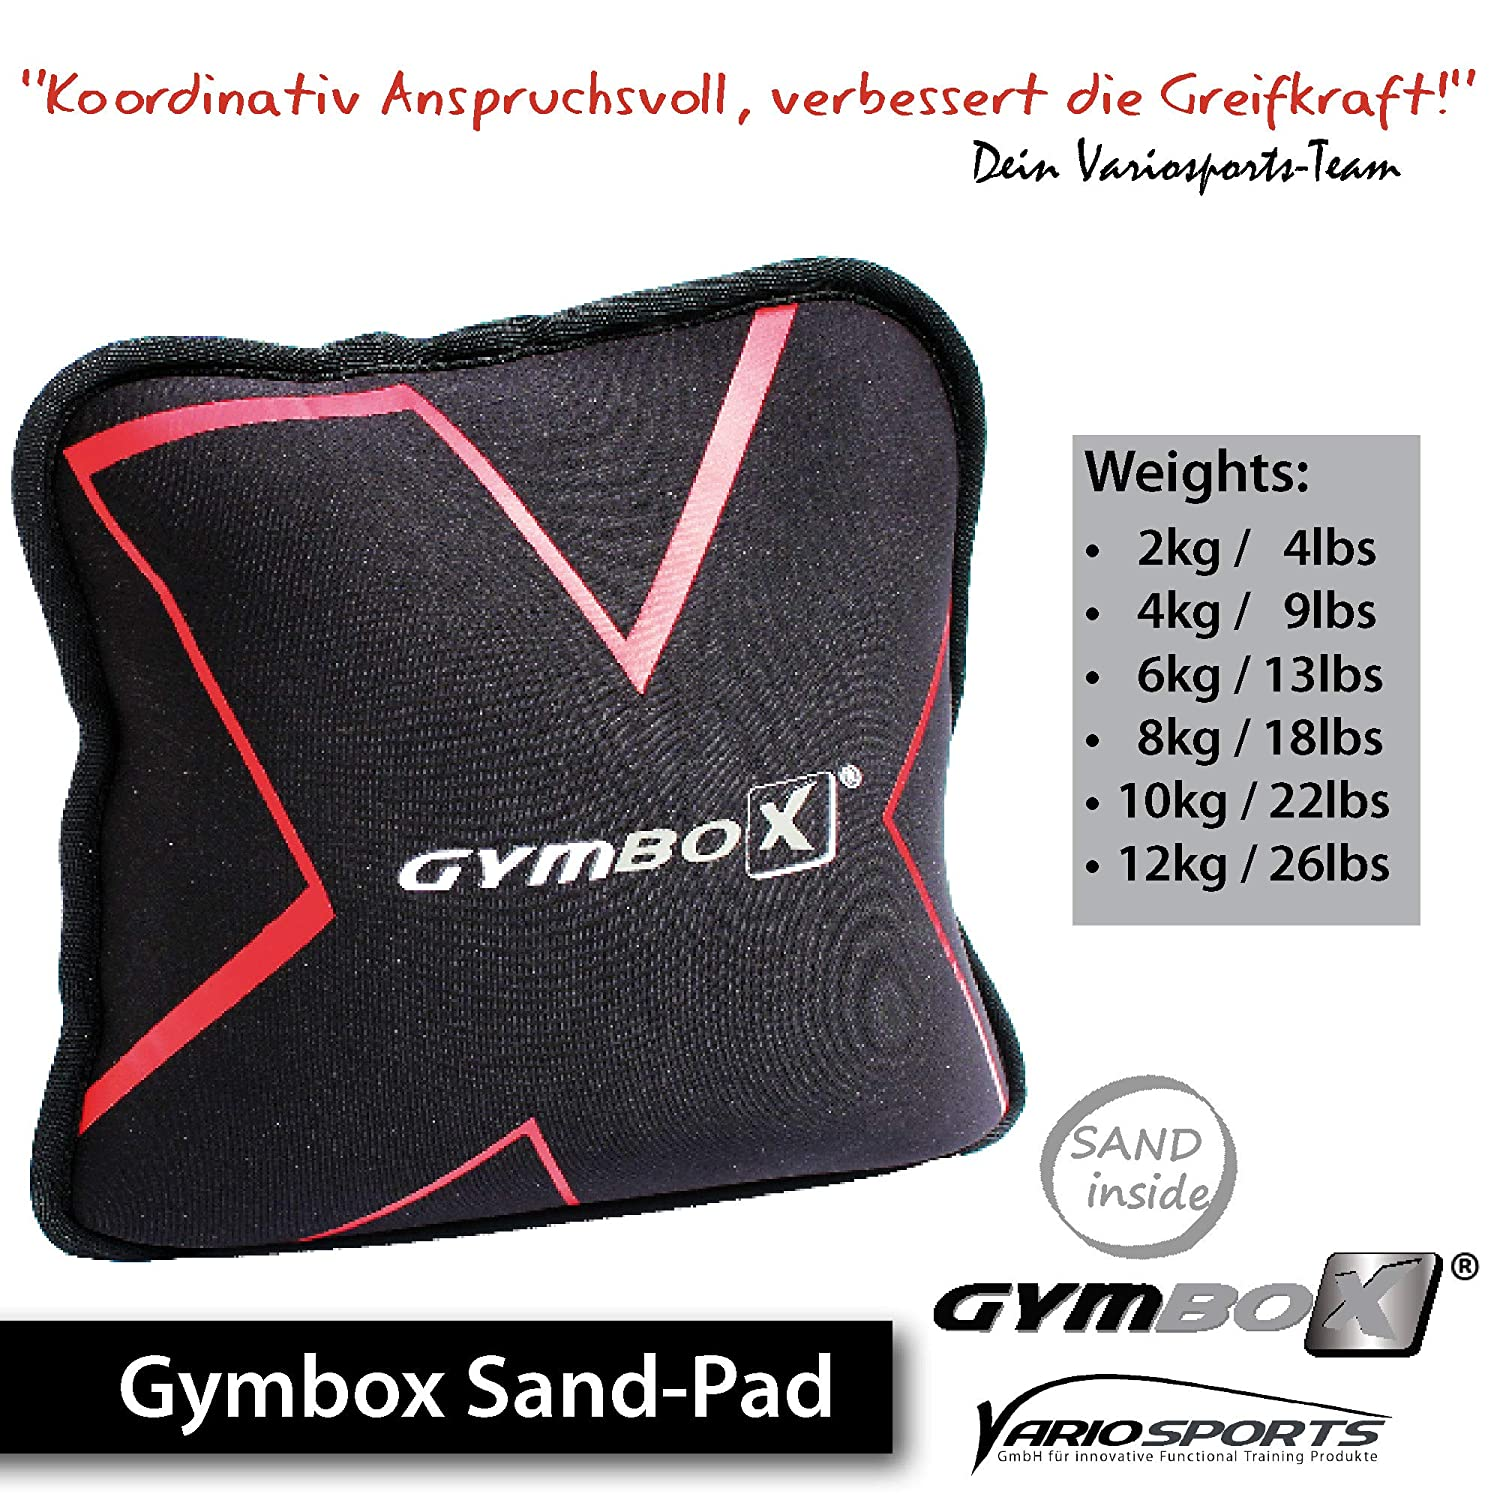 Gymbox Professional Sand Pad Fitness Power Bag Free Moving Weight for Functional Training Crossfit Heavy Weight Exercises Lifting Workout Black 2-12kg Filled 4-26,5lbs